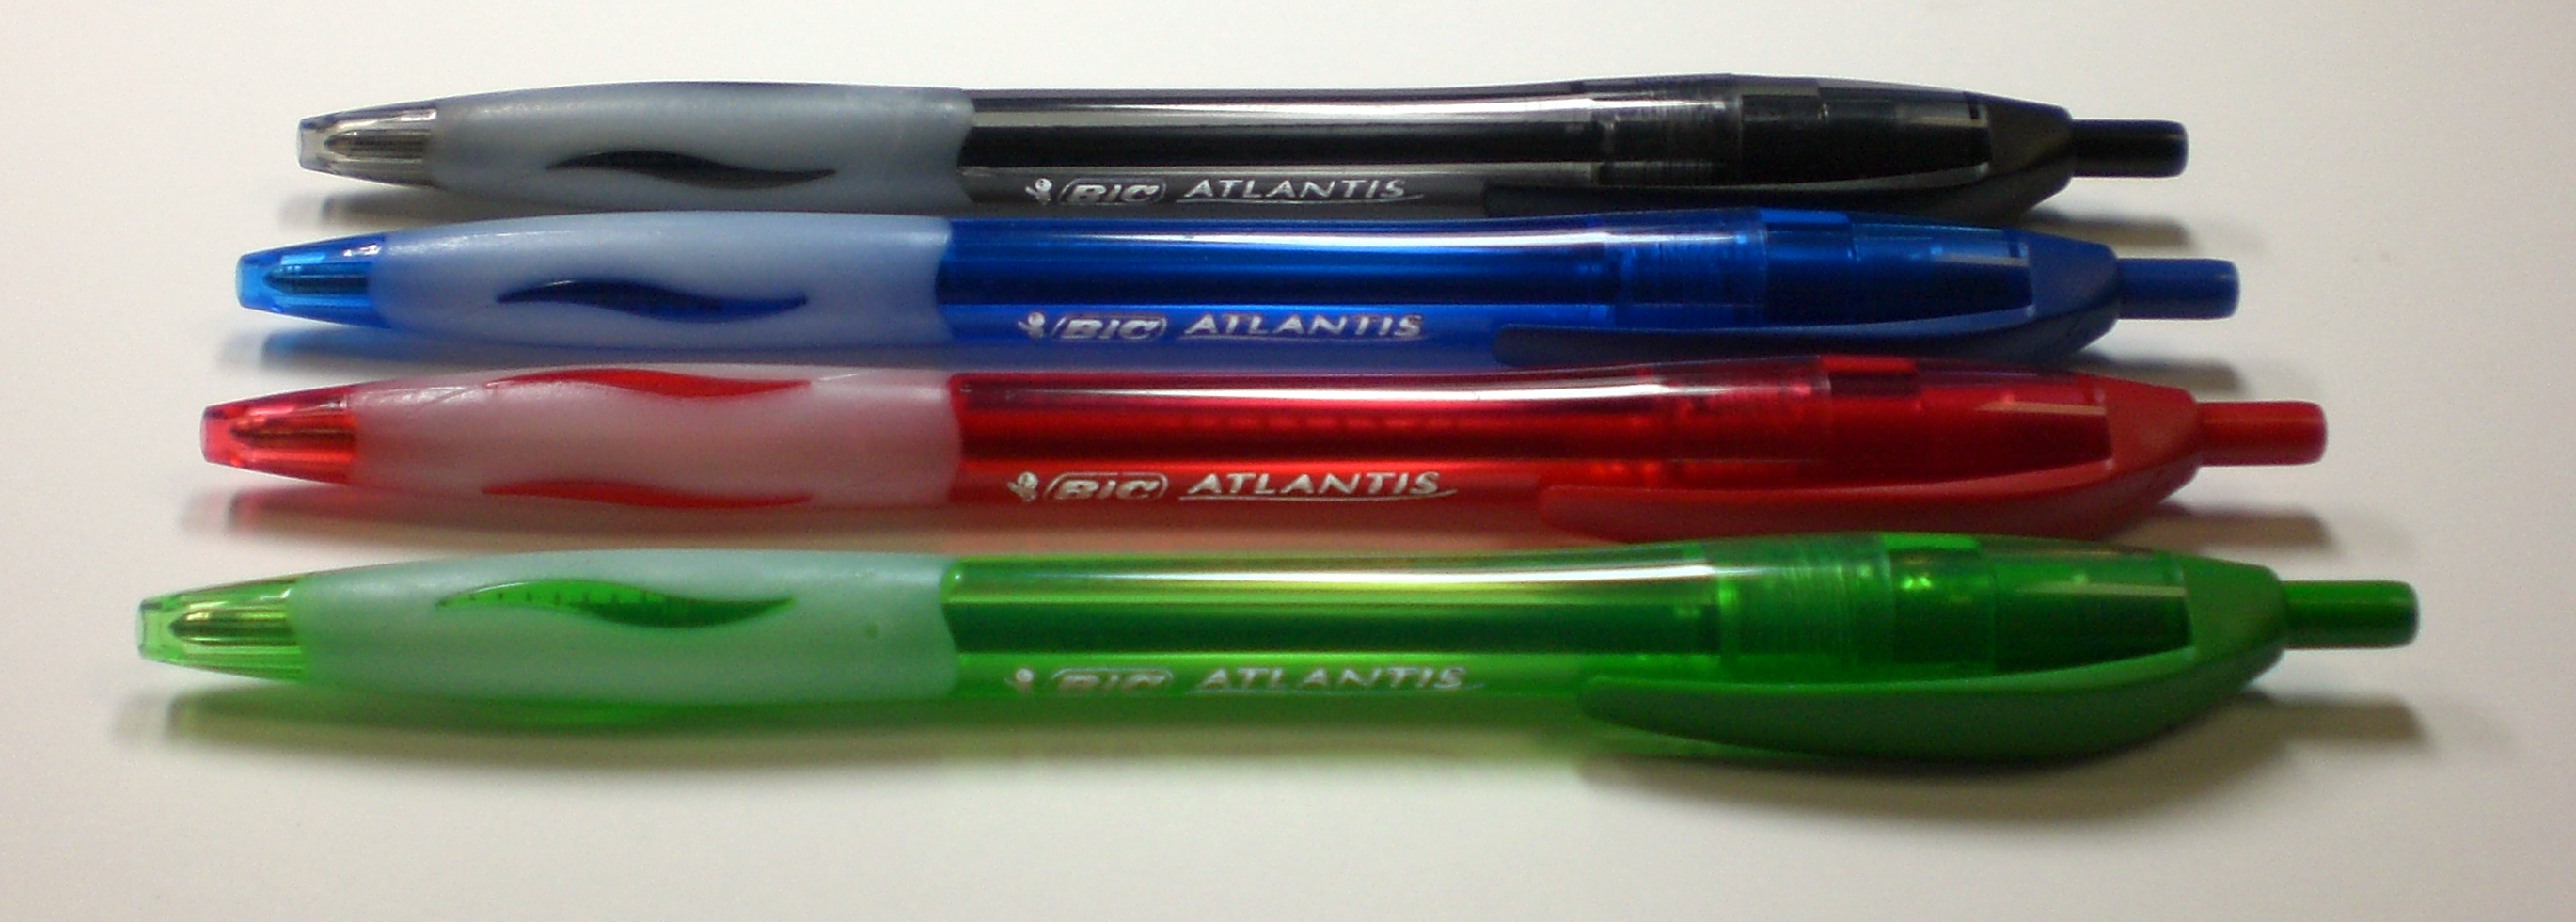 bic atlantis retractable ballpoint pens black blue red and green pens 39 n 39 paper. Black Bedroom Furniture Sets. Home Design Ideas